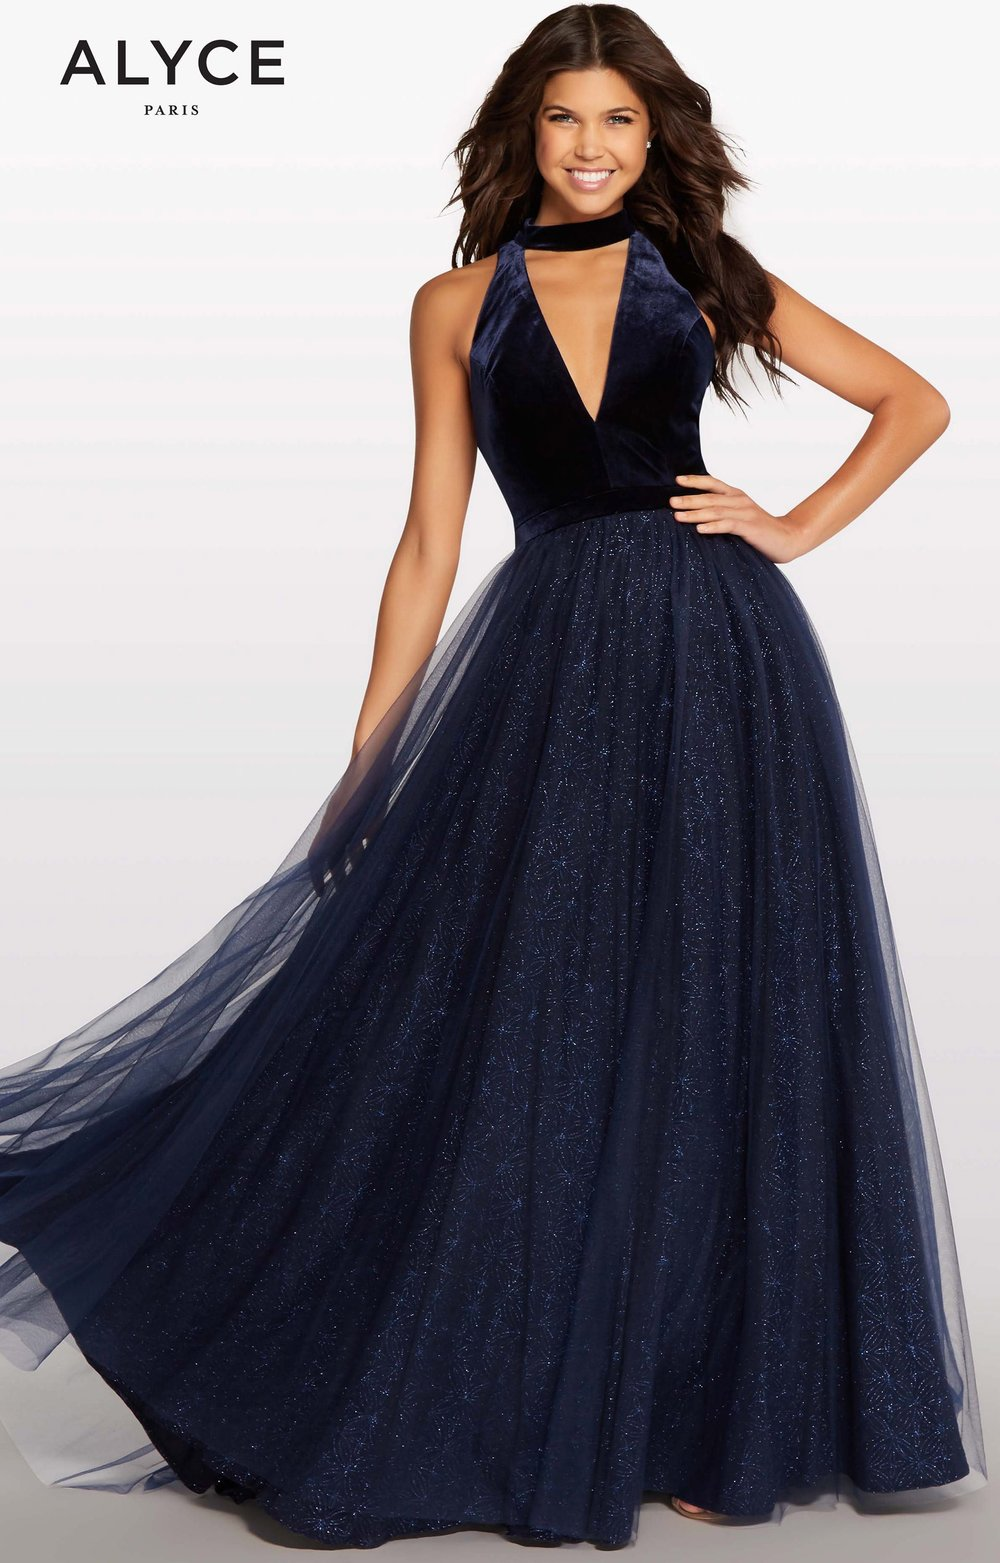 This navy dress has the ever so popular velvet choker top with a sparkly tulle ballgown skirt. We currently have this dress in stock and it available for ordering in different sizes.